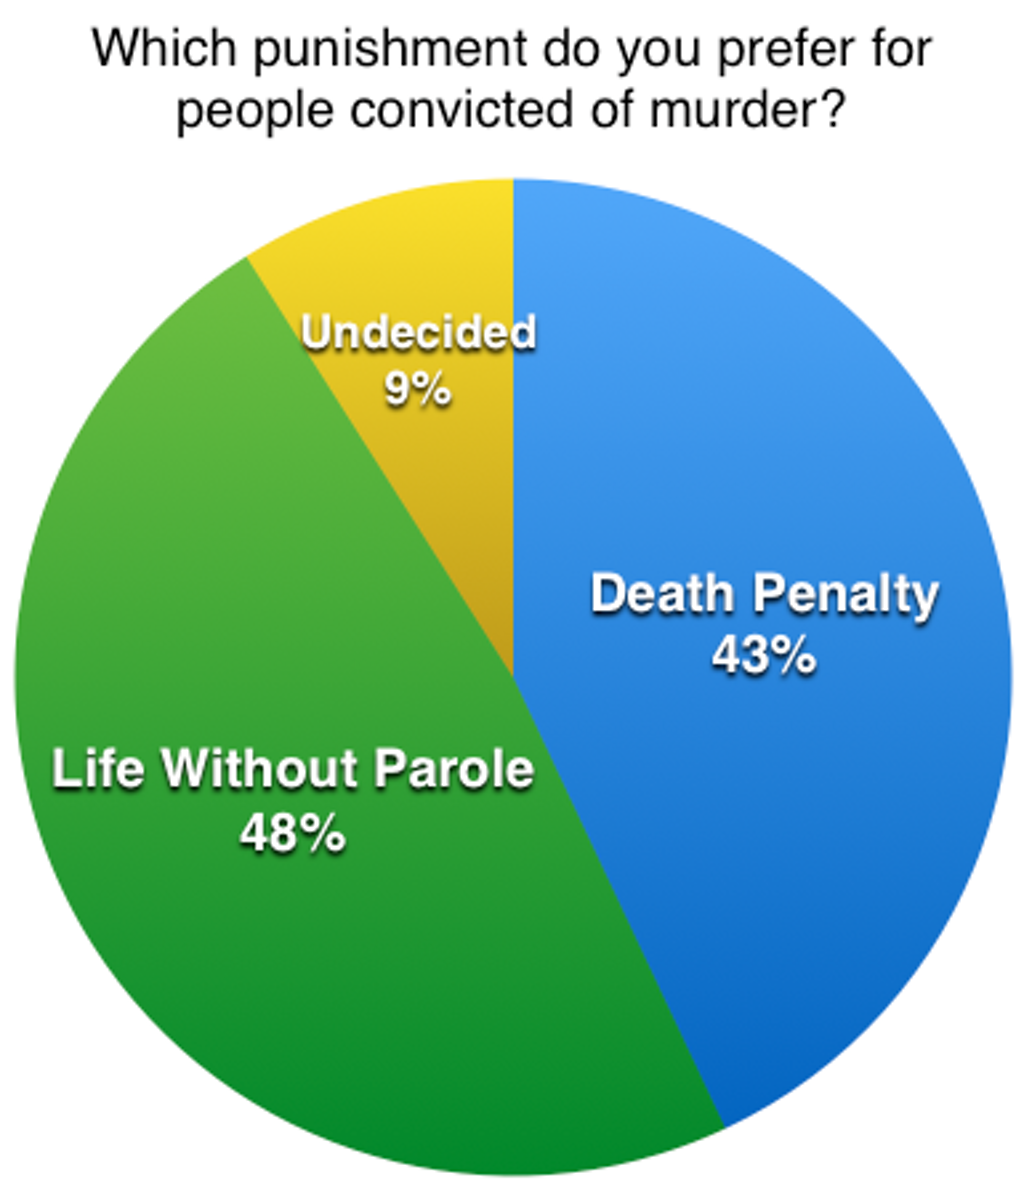 Quinnipiac Poll Shows Americans Prefer Life Without Parole to Death Penalty